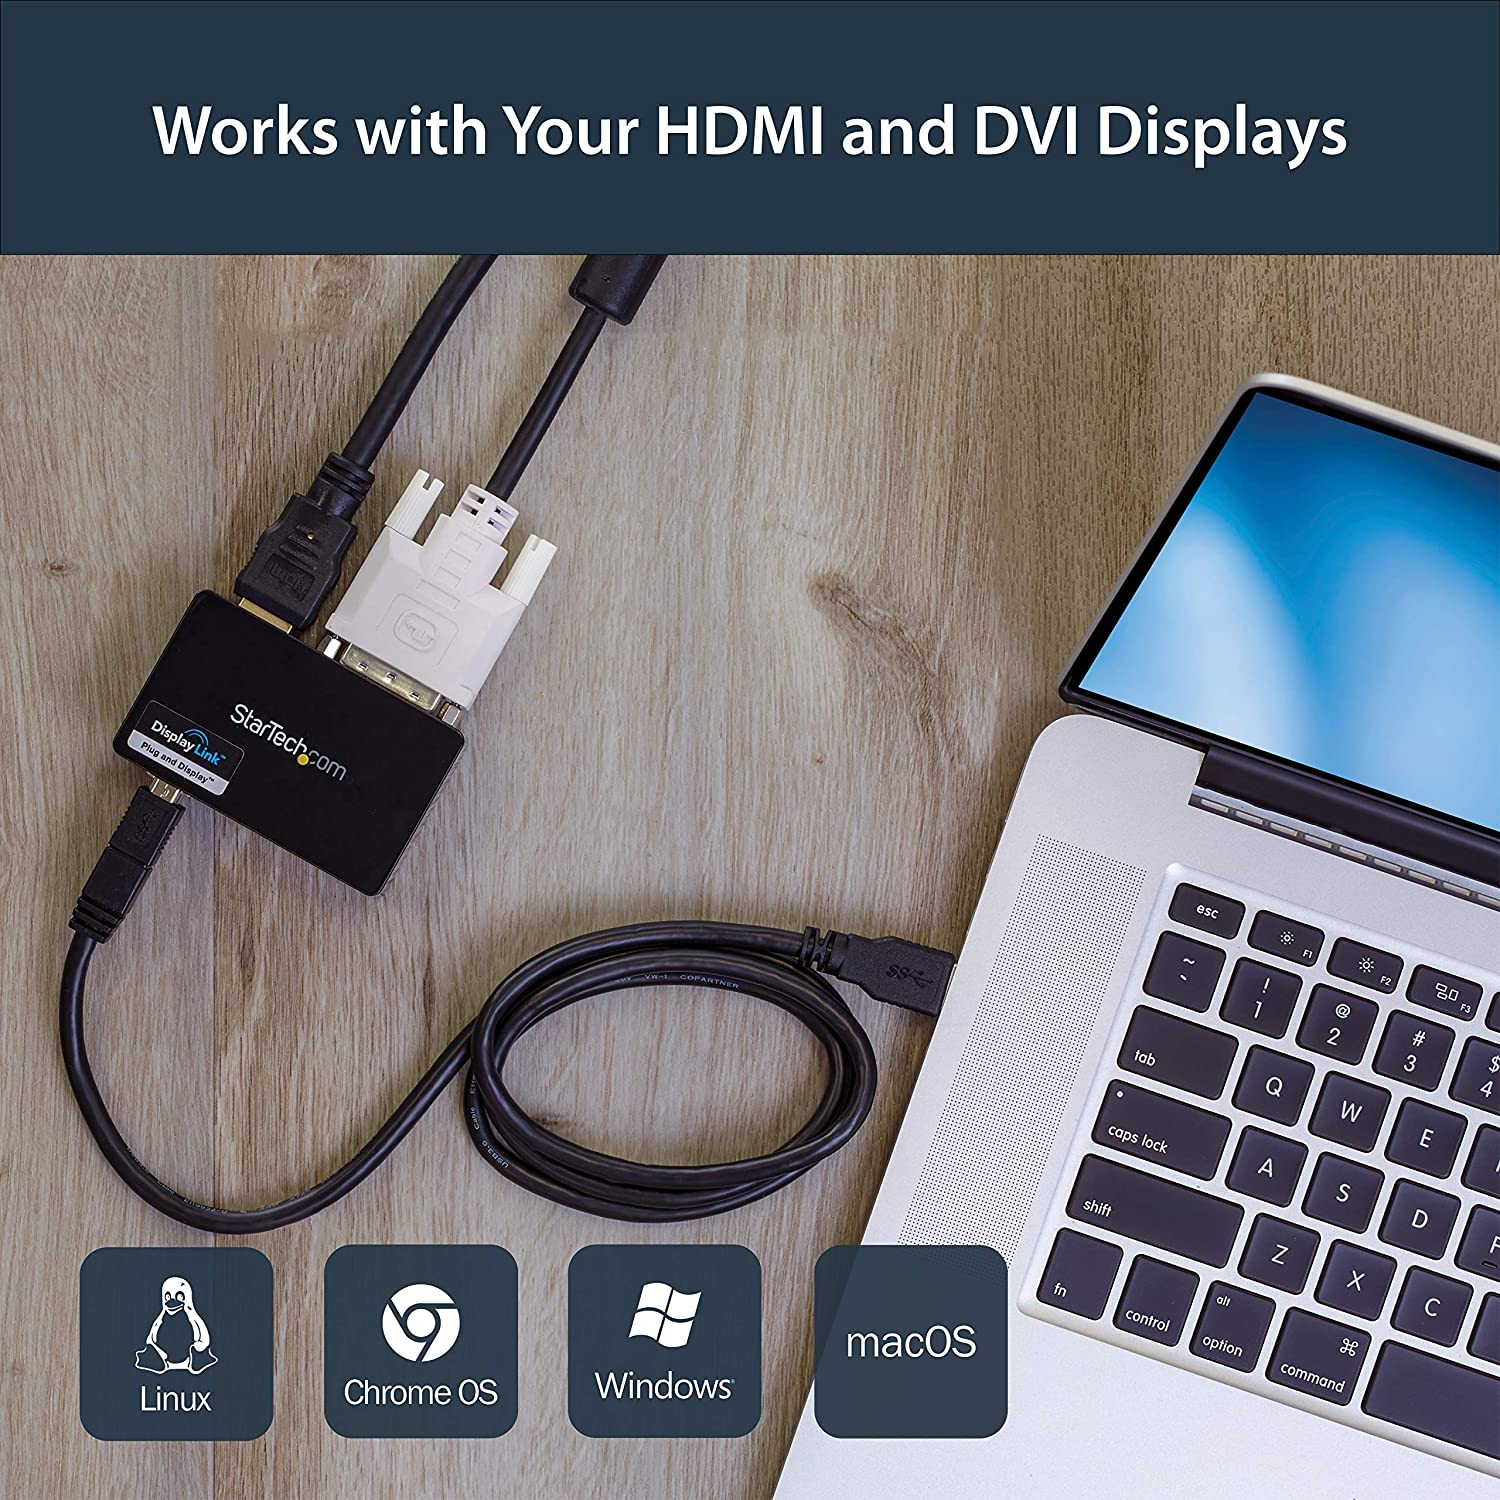 Black USB32HDEH StarTech.com USB 3.0 to HDMI /& DVI Adapter with 1x USB Port External Video /& Graphics Card Adapter Dual Monitor Hub Supports Windows